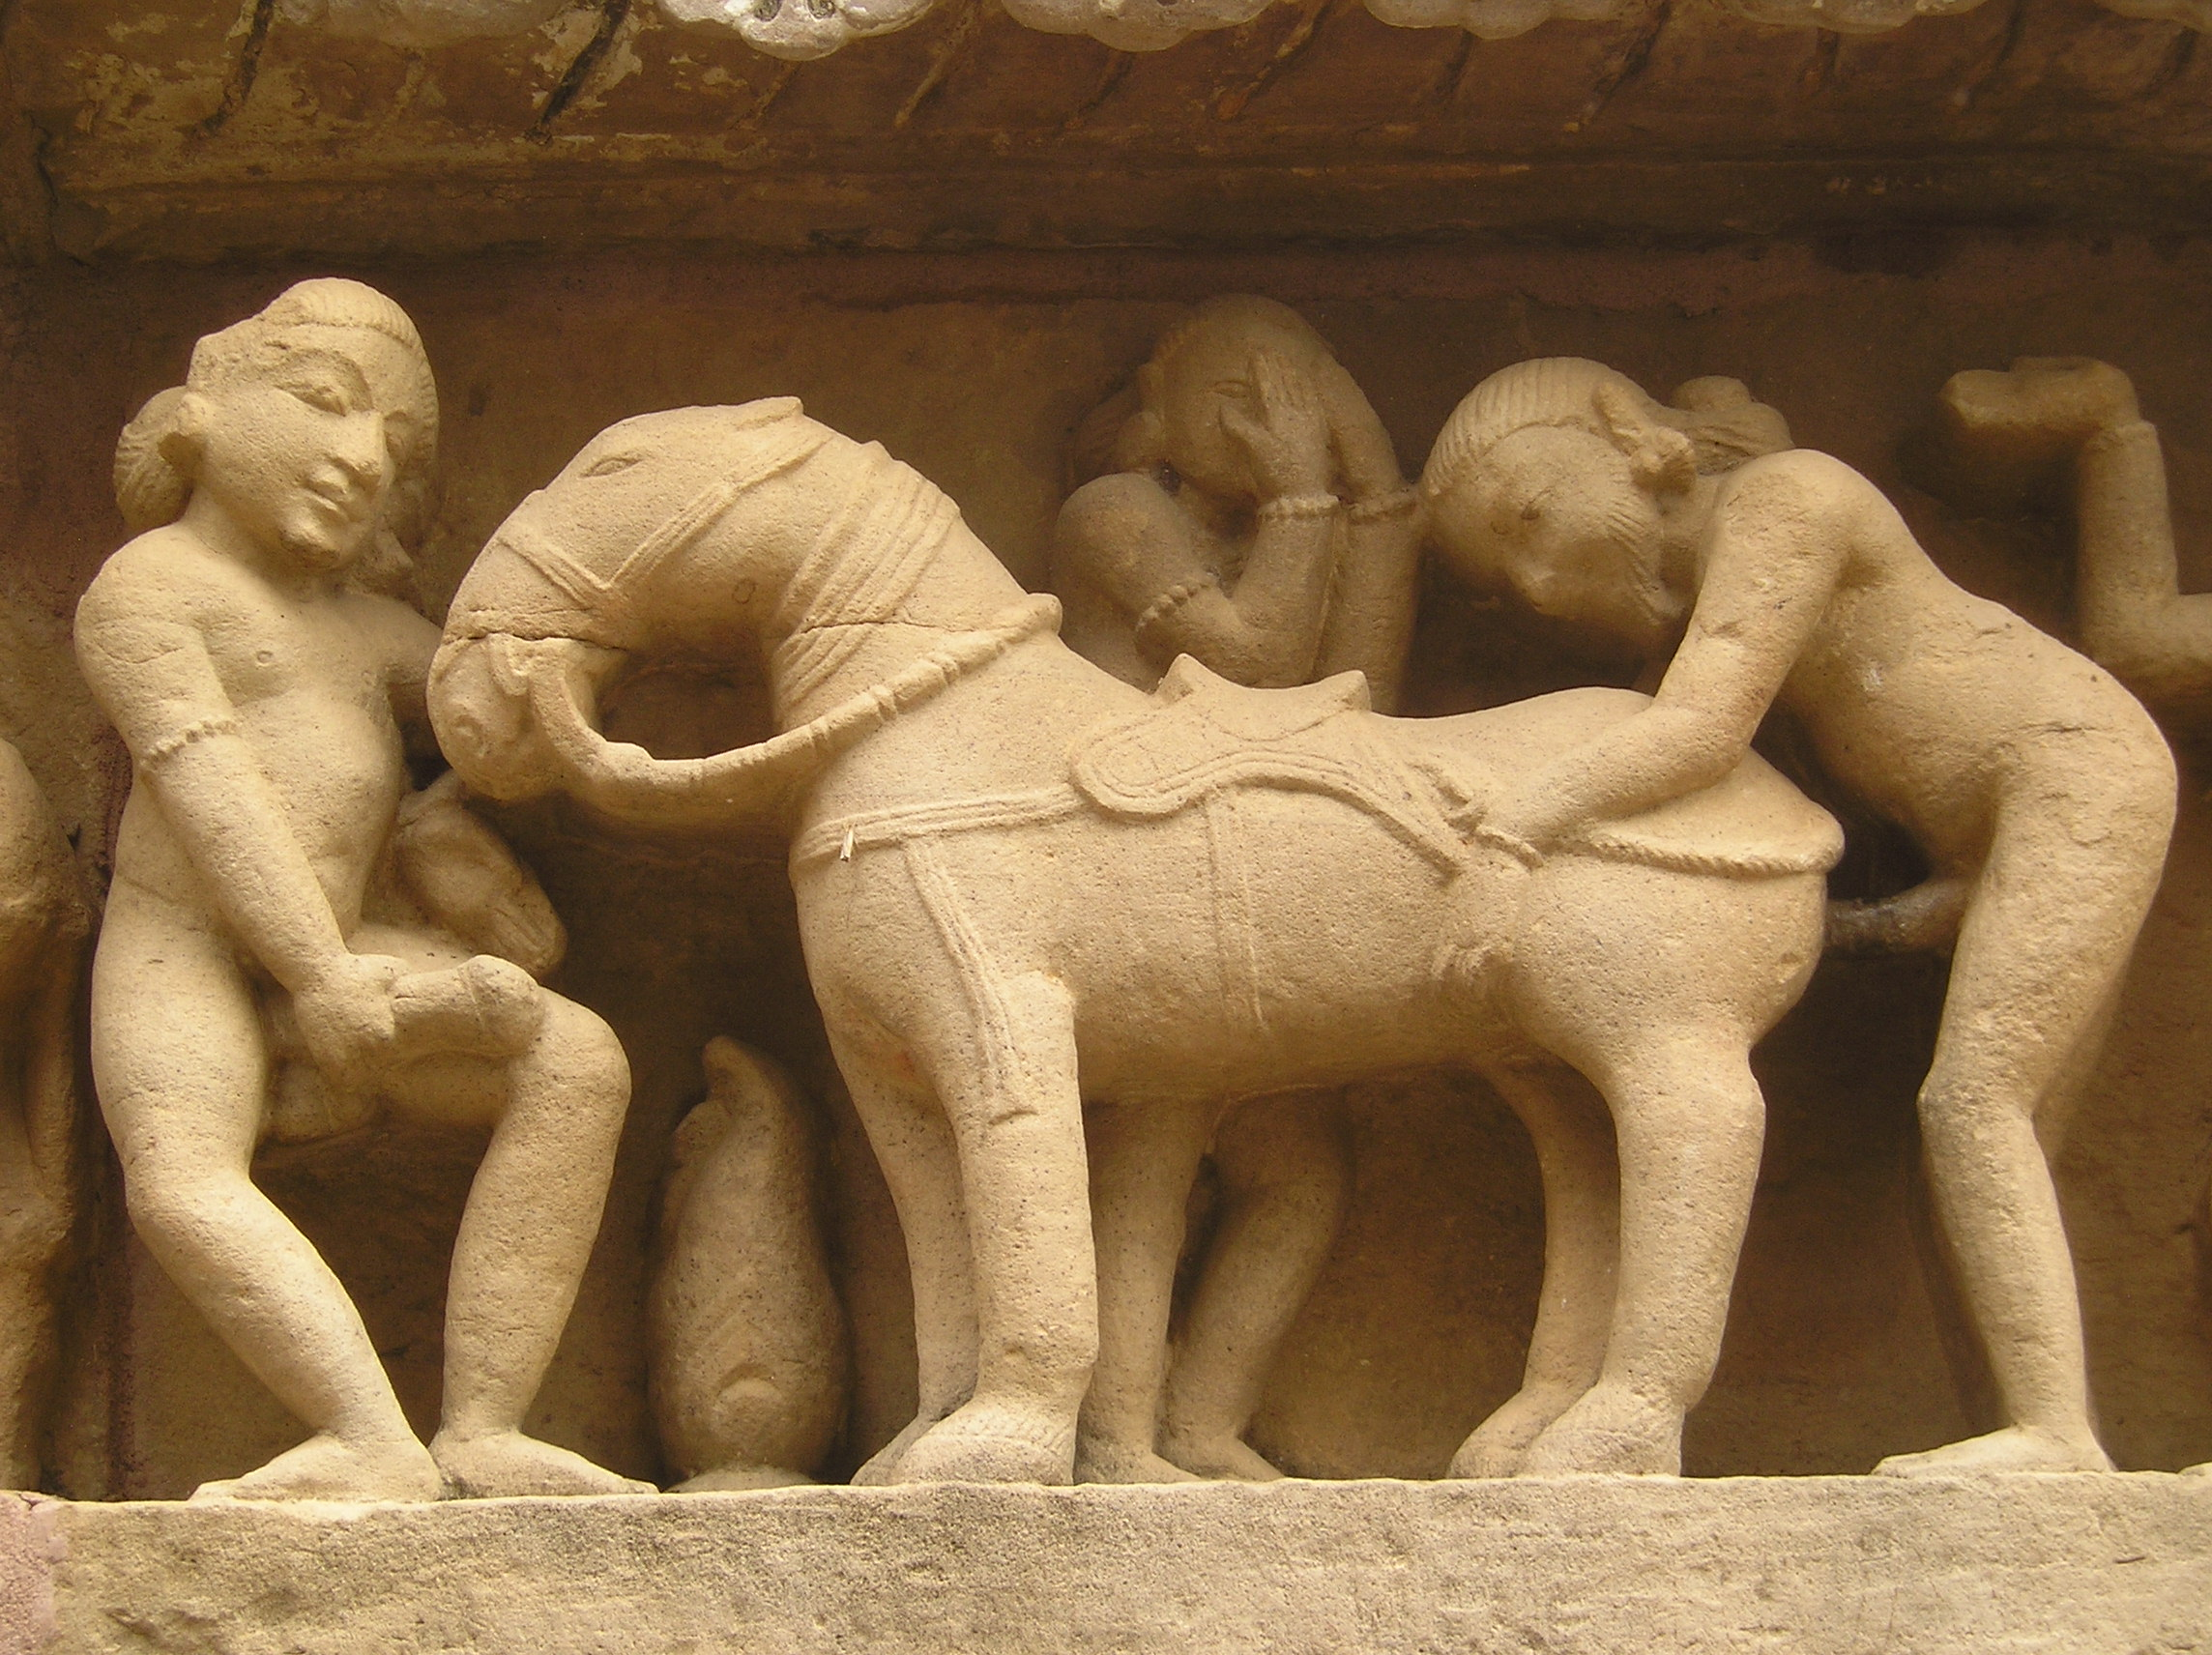 Erotic detal from the base of Lakshana Tempel in Khajuraho (India)